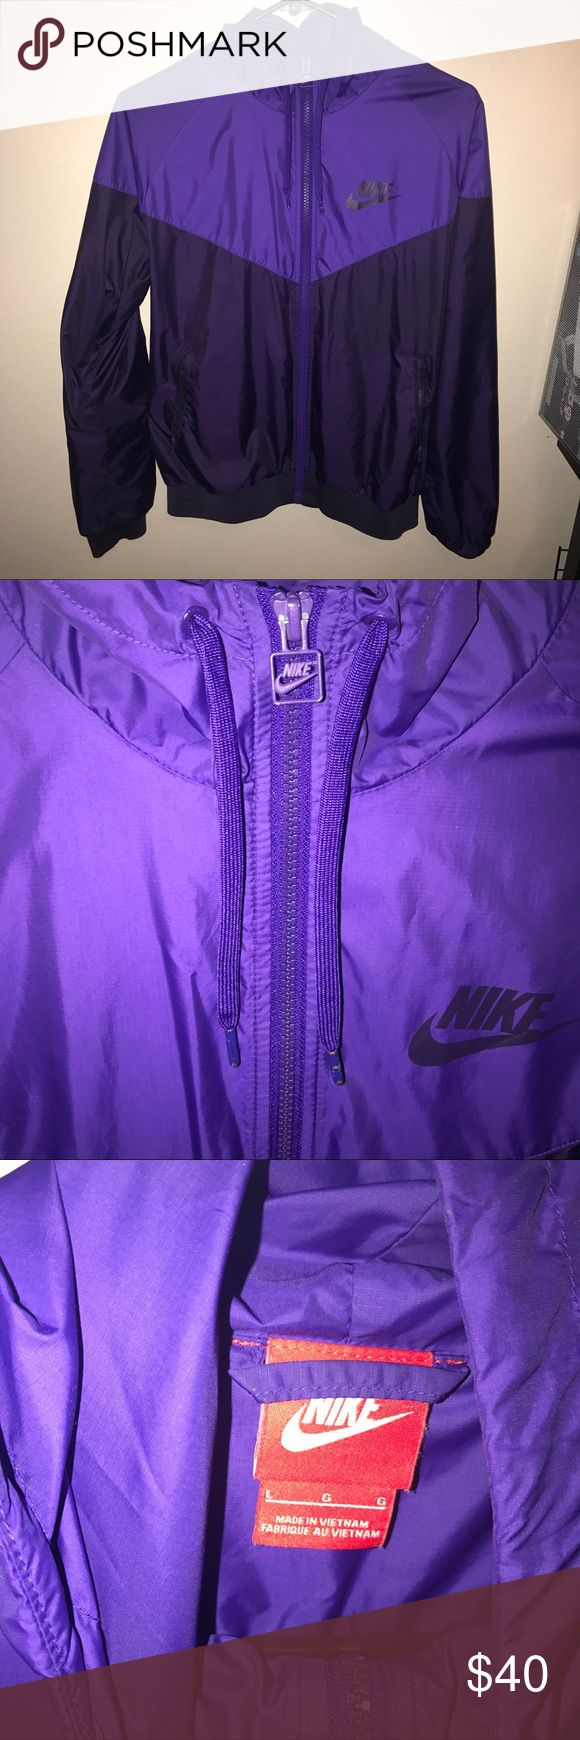 Nike Windrunner Purple windrunner jacket. Size large but I normally wear a medium so fits small. Light wear and tear on ends of drawstring and on zipper tab. Nike Jackets & Coats